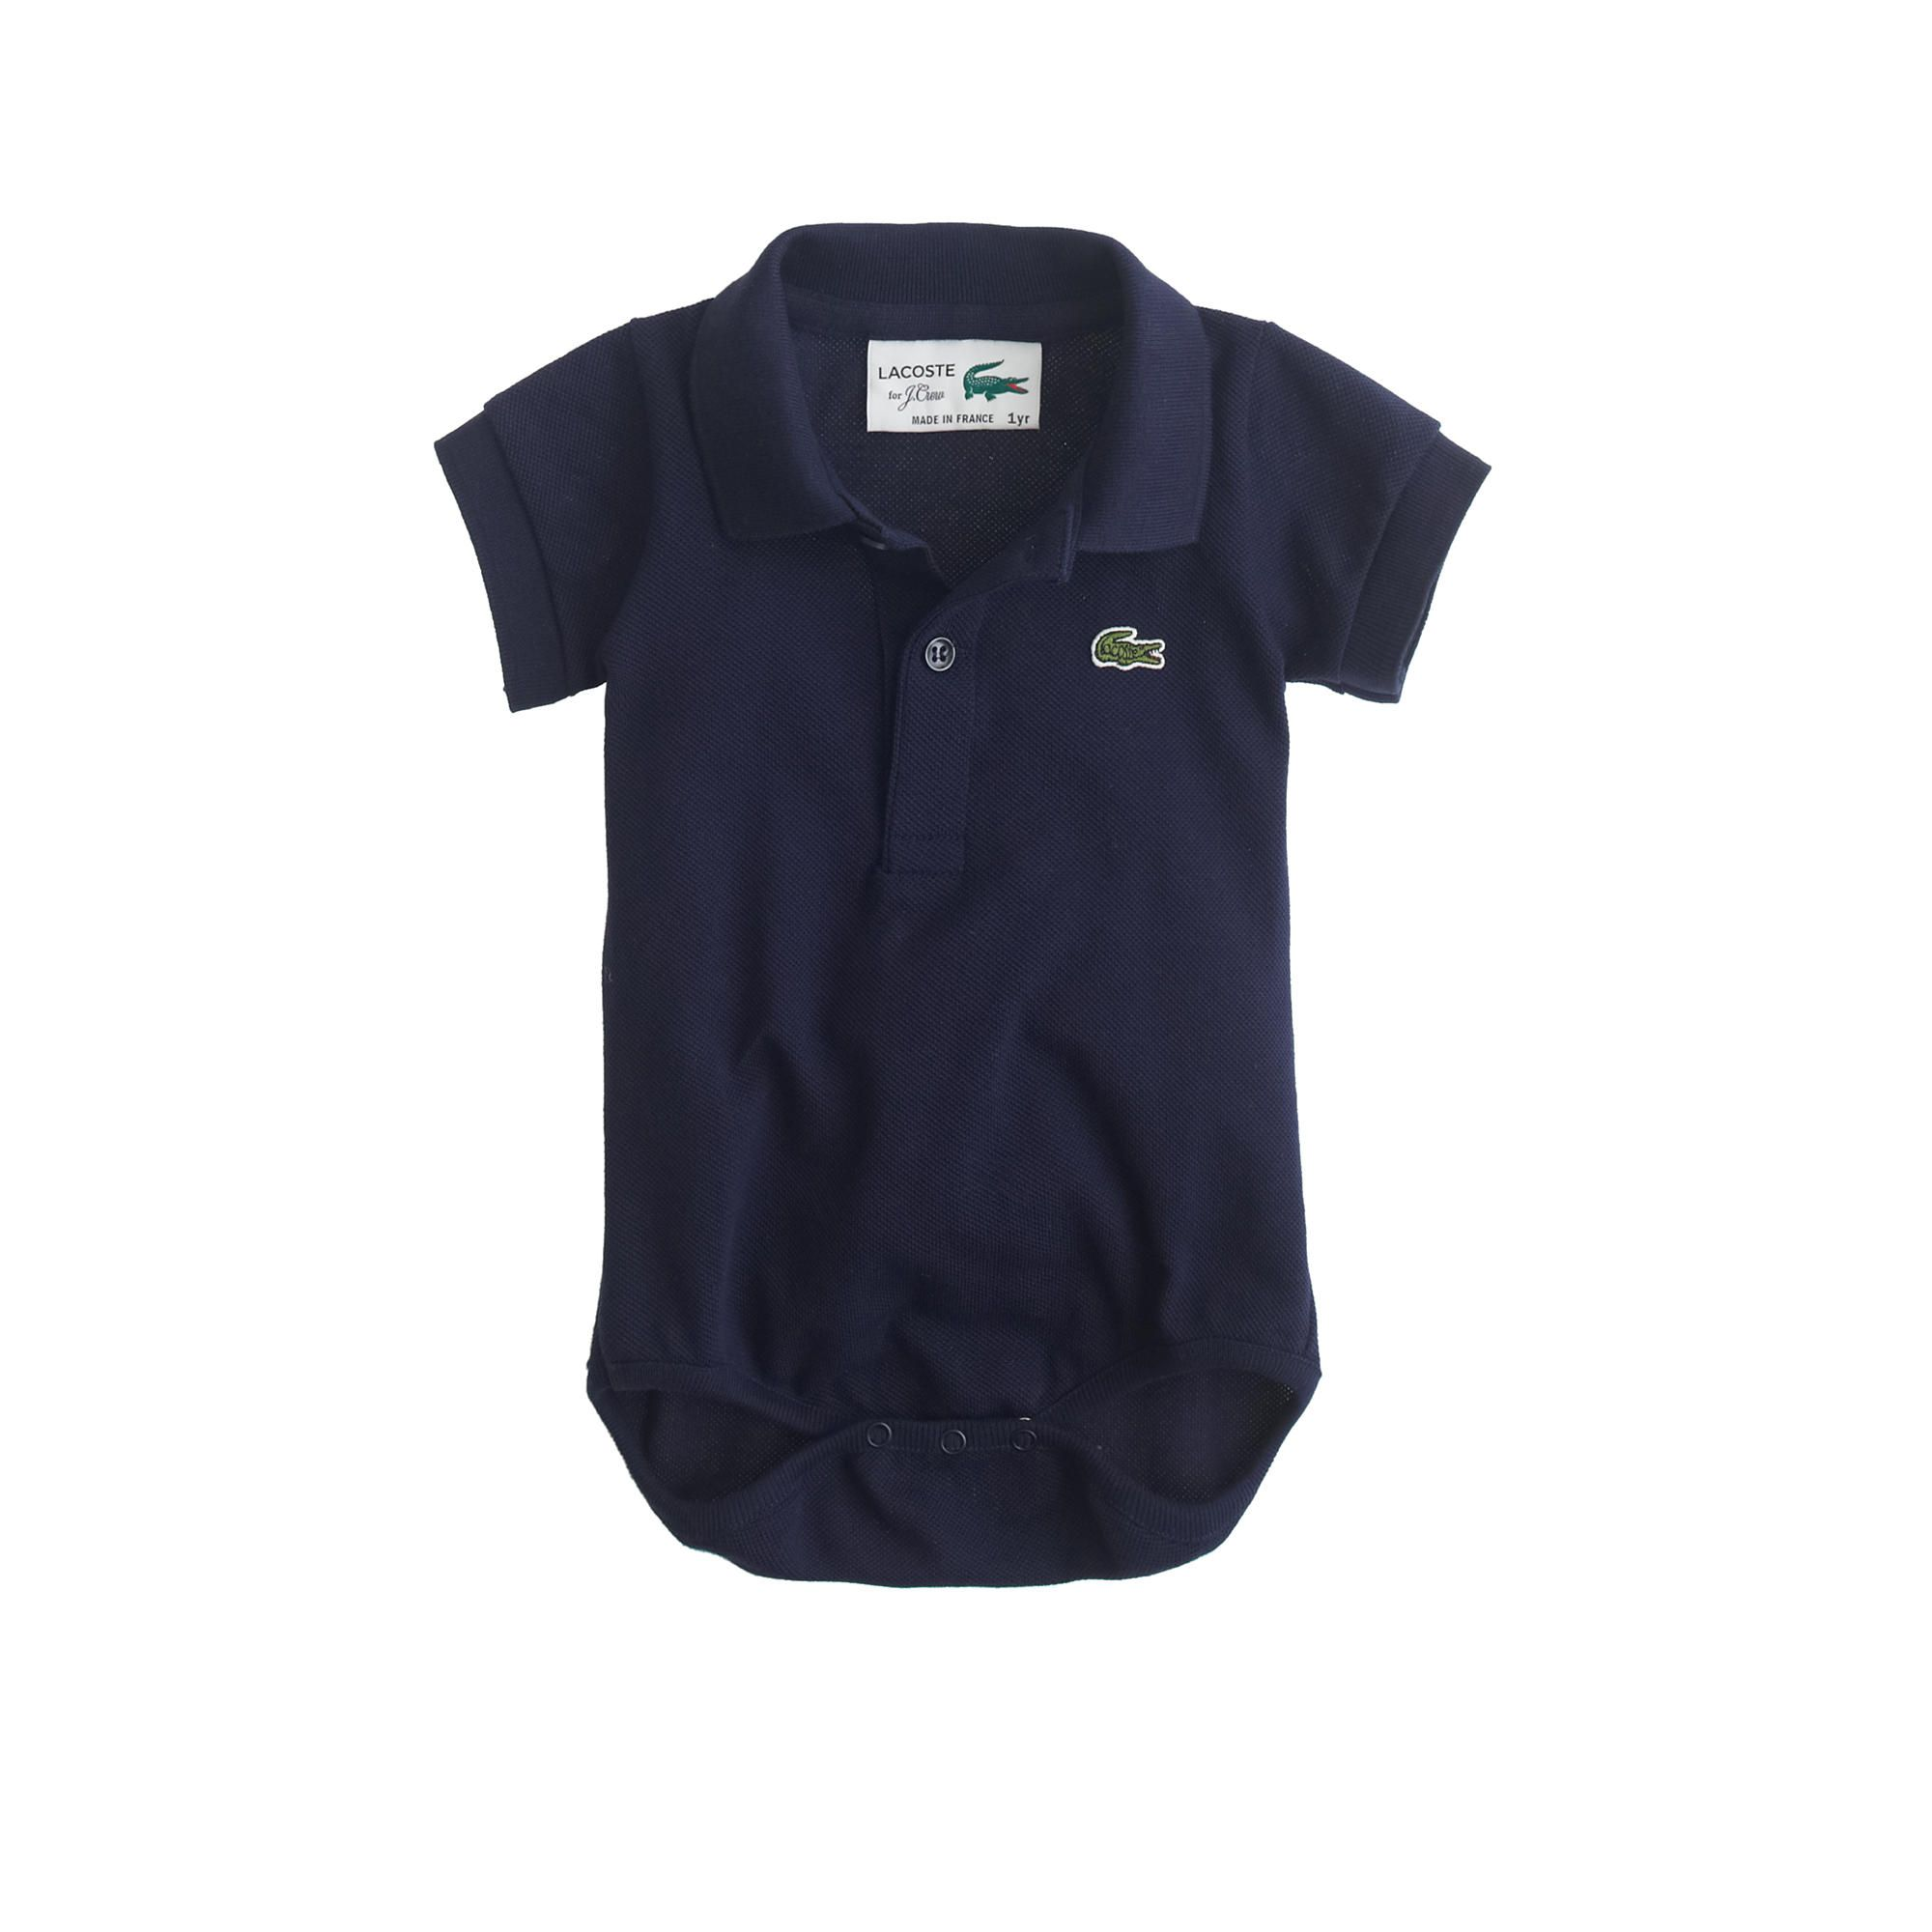 1bcefc2ed Lacoste® Polo One Piece